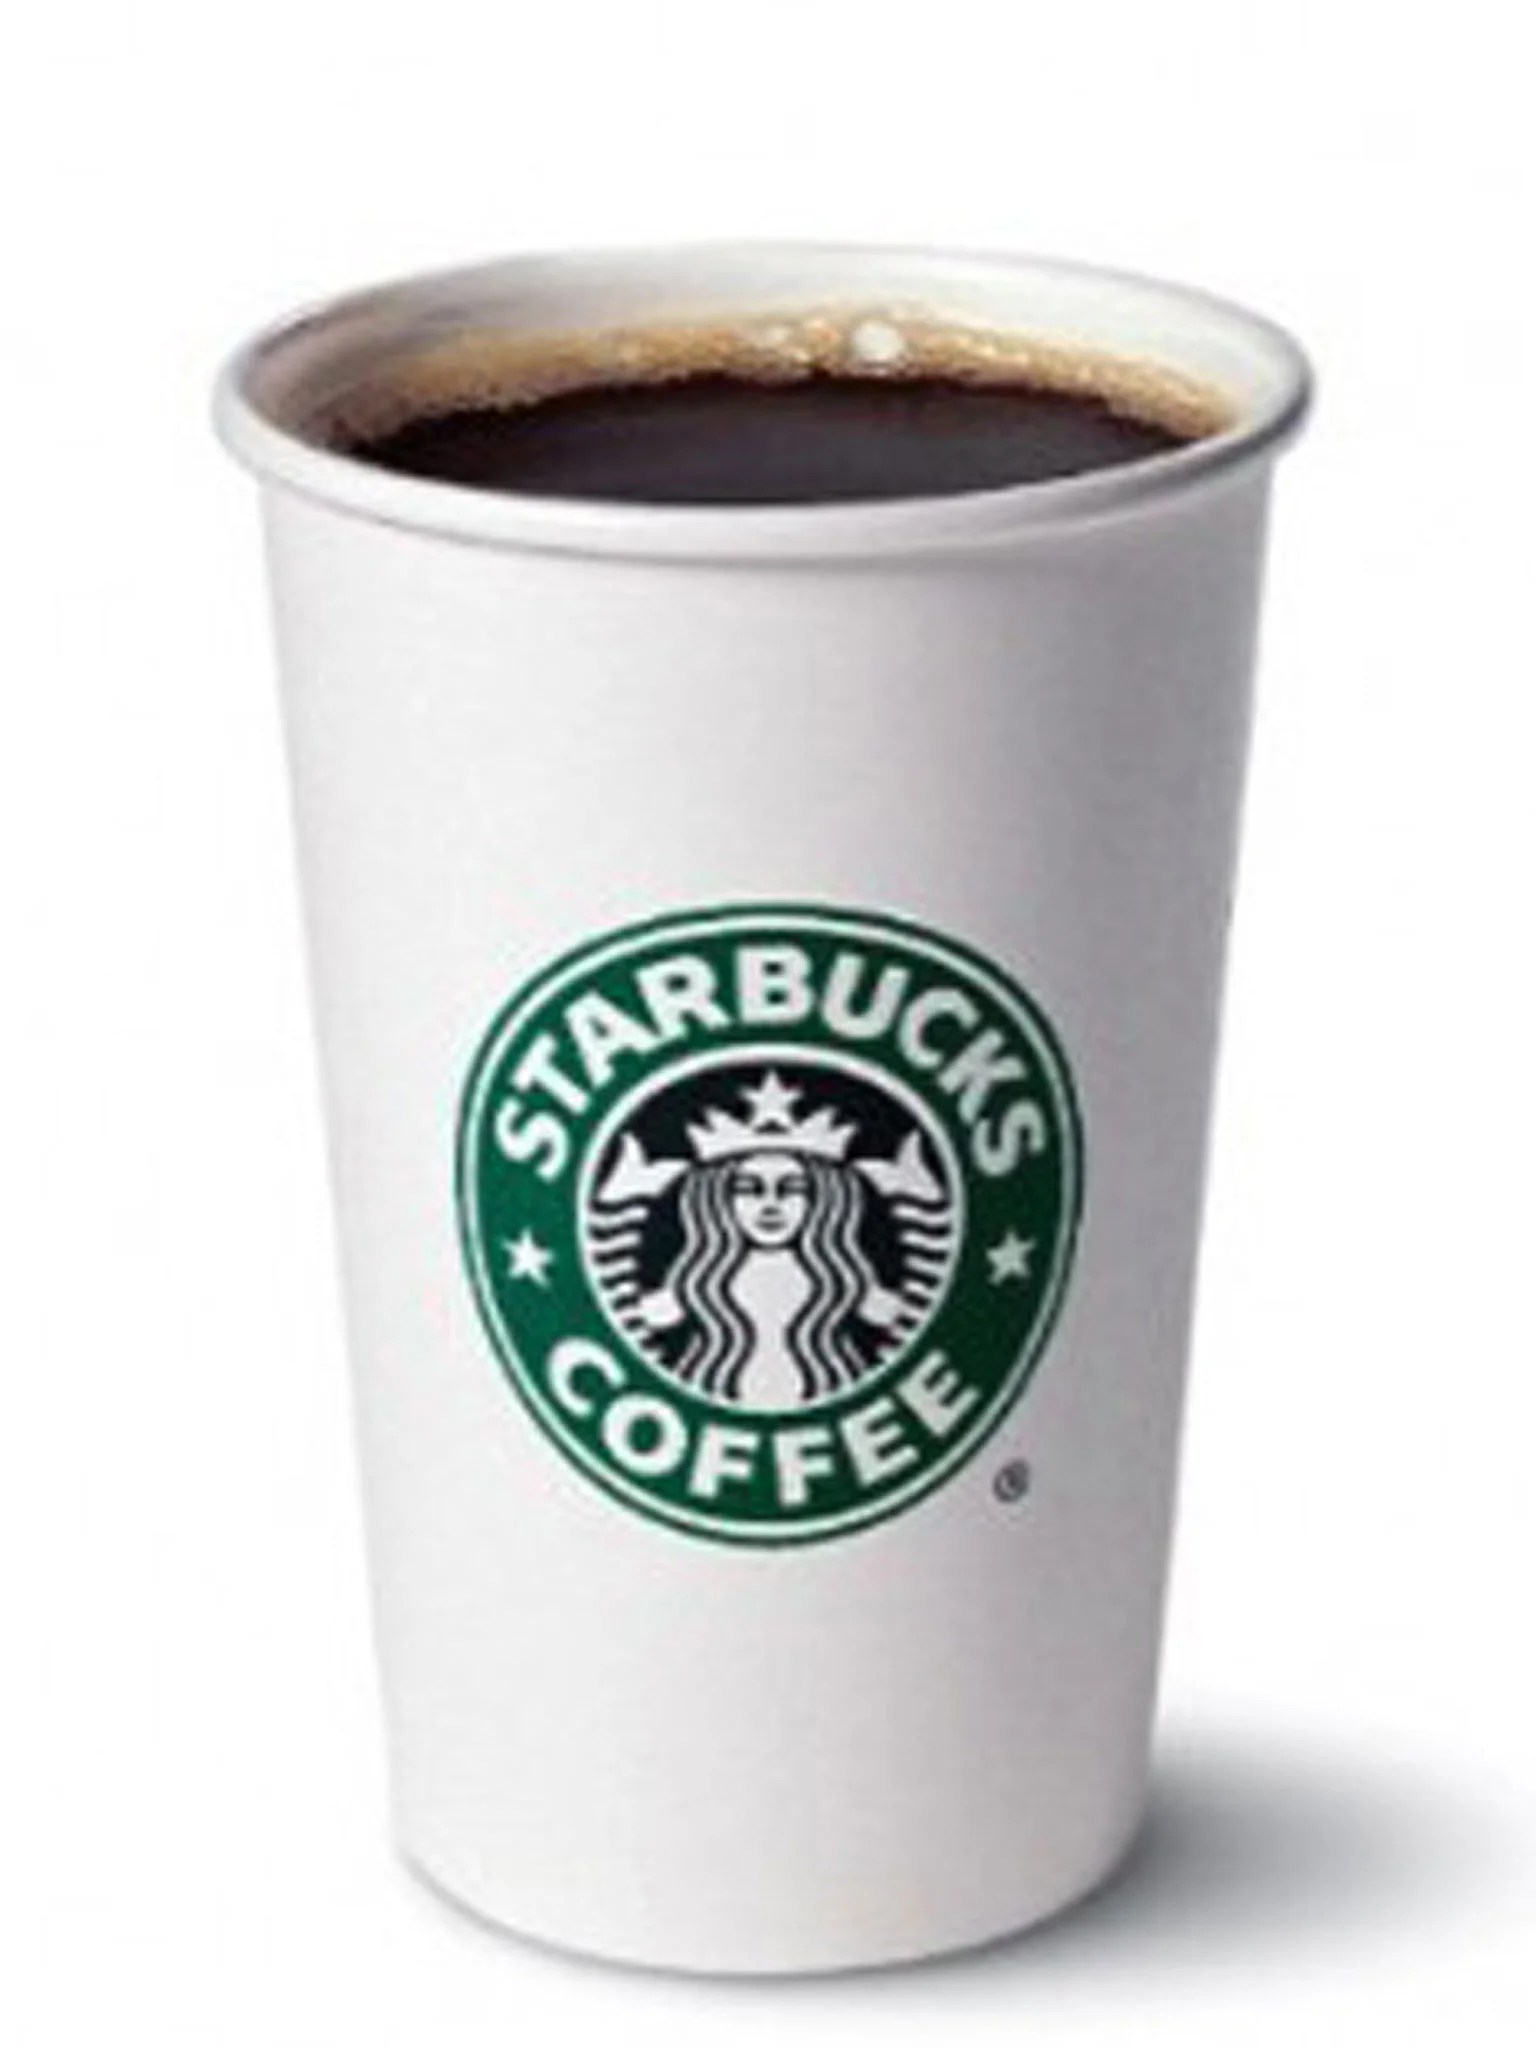 Coffee Americano Starbucks Starbucks Joins Scheme To Help Homeless Buy A 39suspended